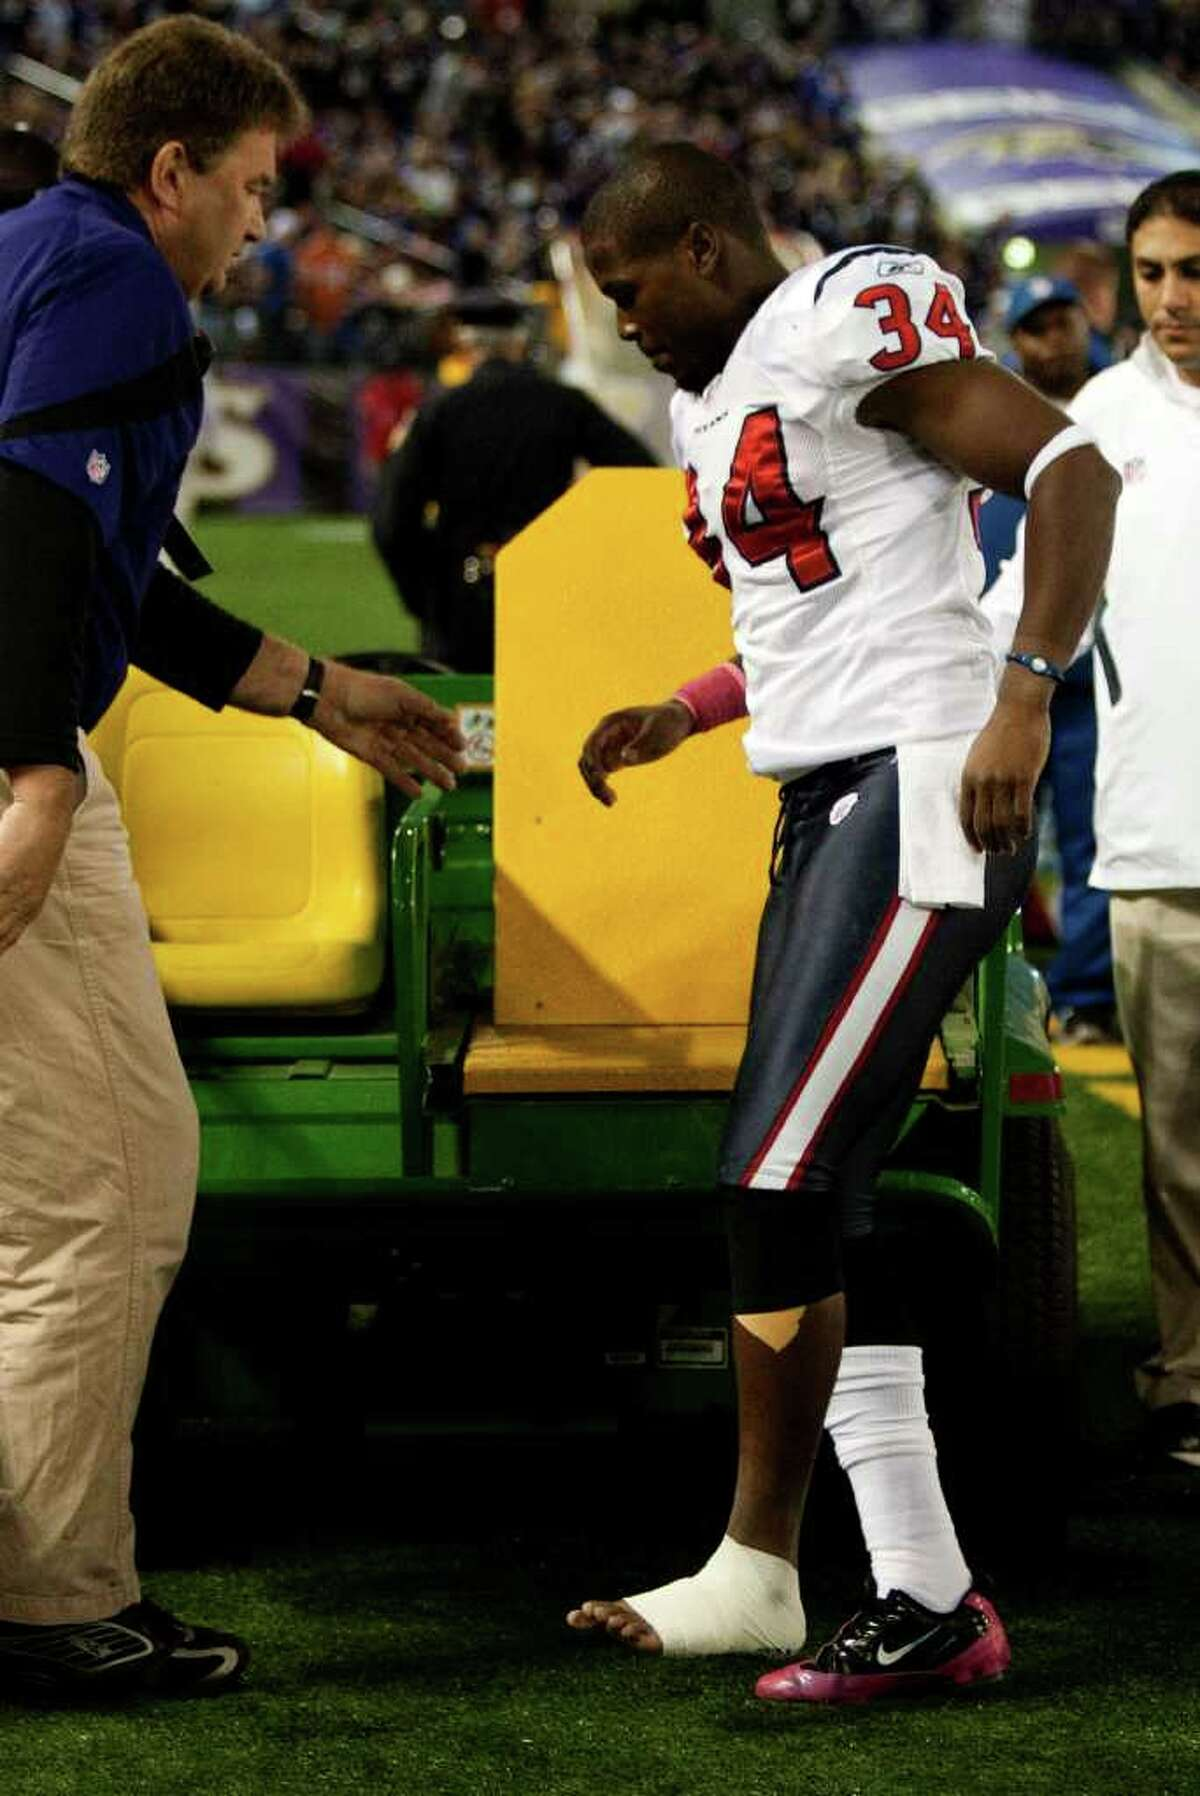 Houston Texans defensive back Dominique Barber (34) limps a cart after suffering an injury against the Baltimore Ravens during the fourth quarter of an NFL football game at M&T Bank Stadium Sunday, Oct. 16, 2011, in Baltimore.